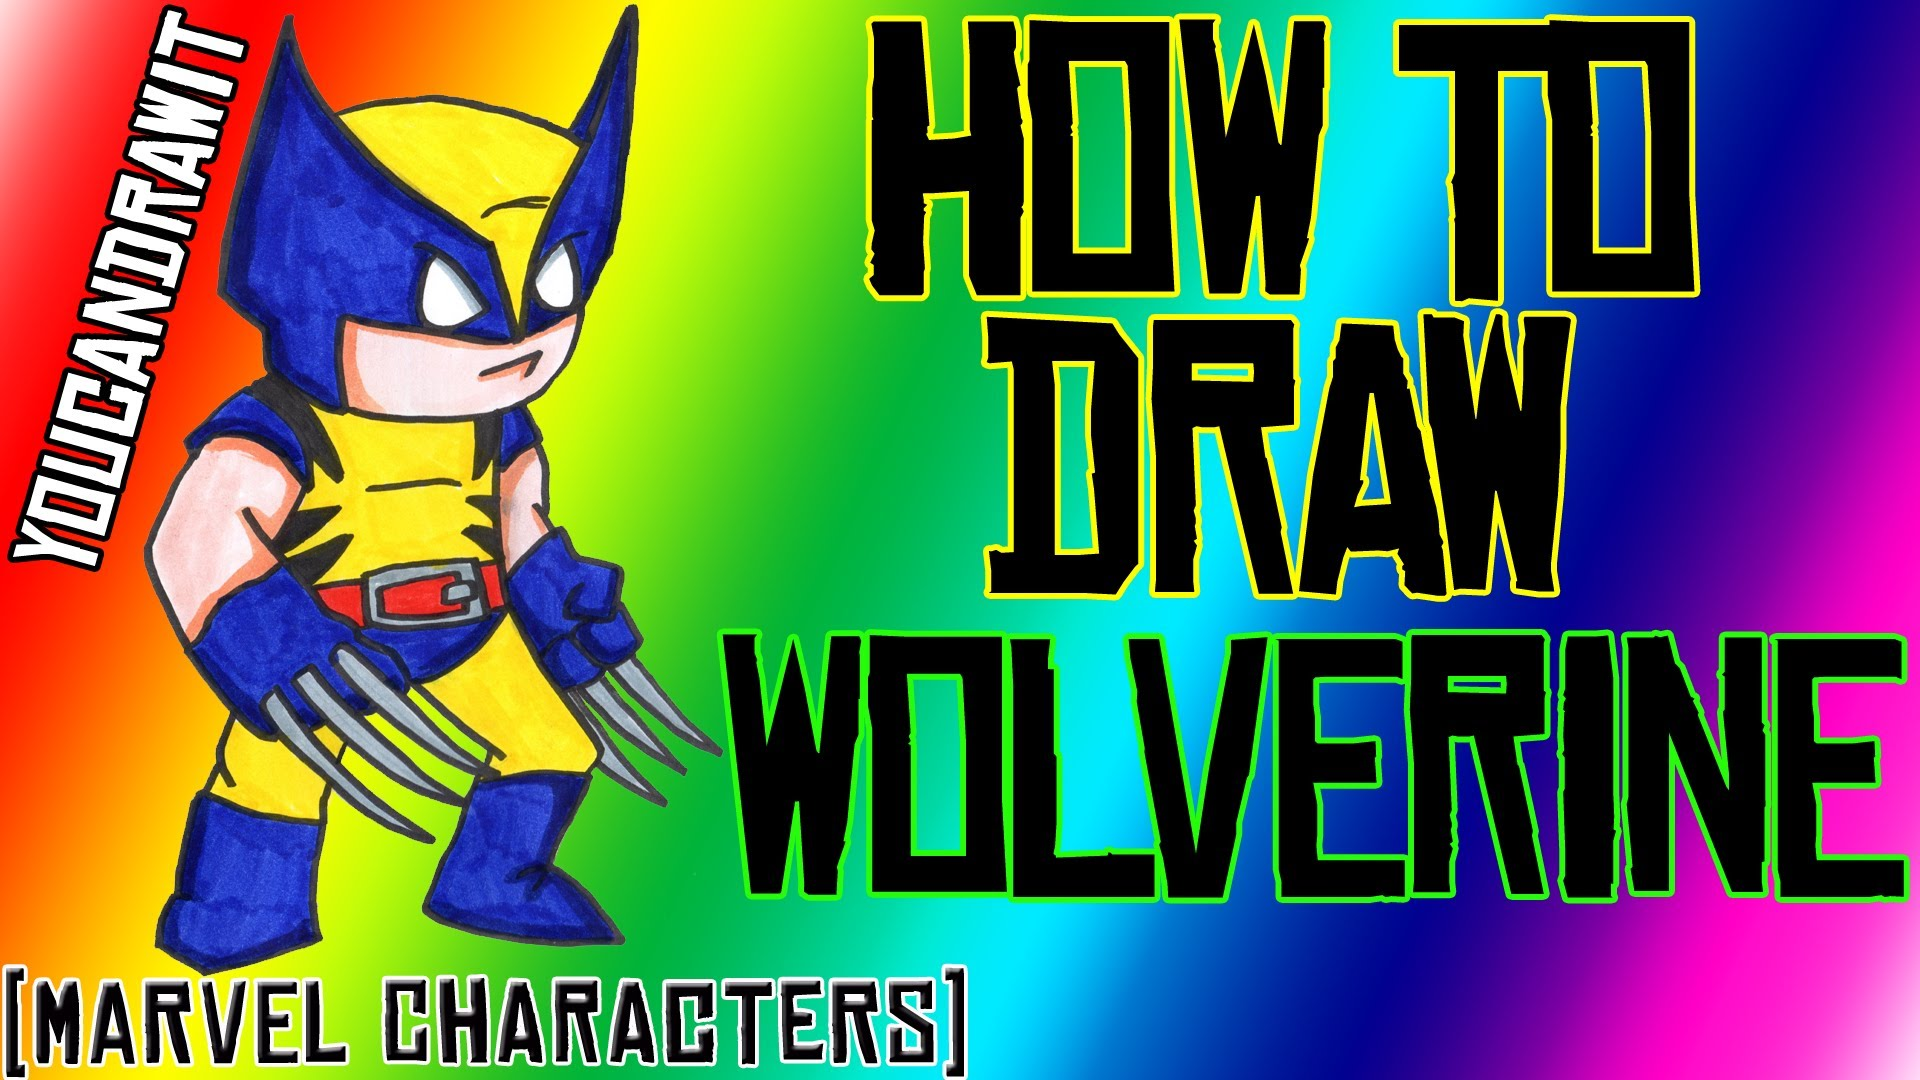 Drawn thor Drawing Wolverine  Characters ✎ YouCanDrawIt How